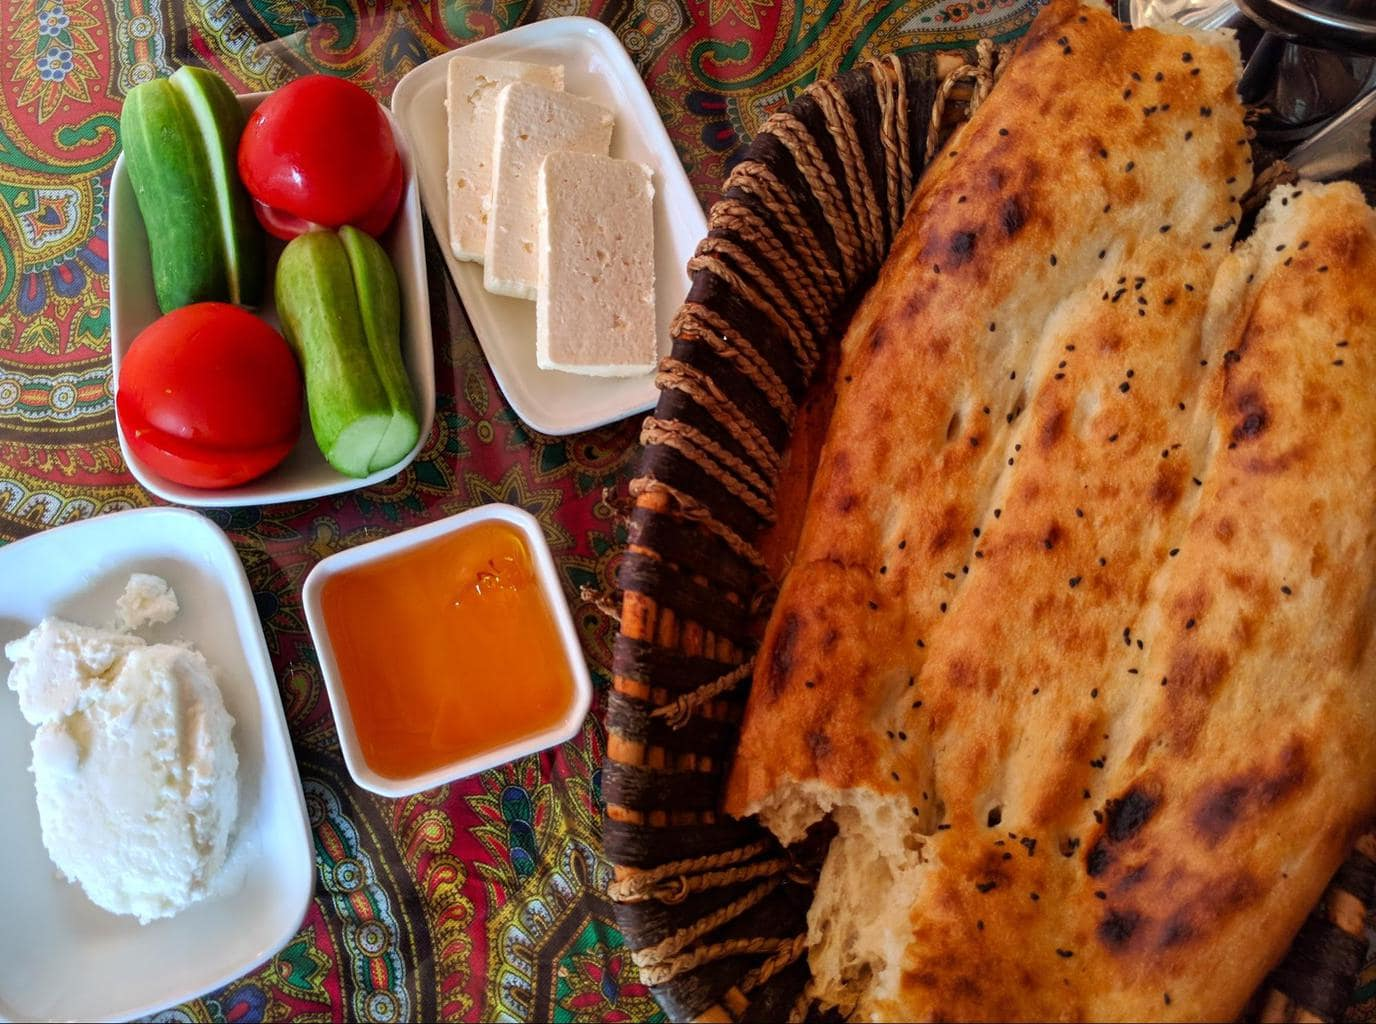 Typical Azerbaijan breakfast